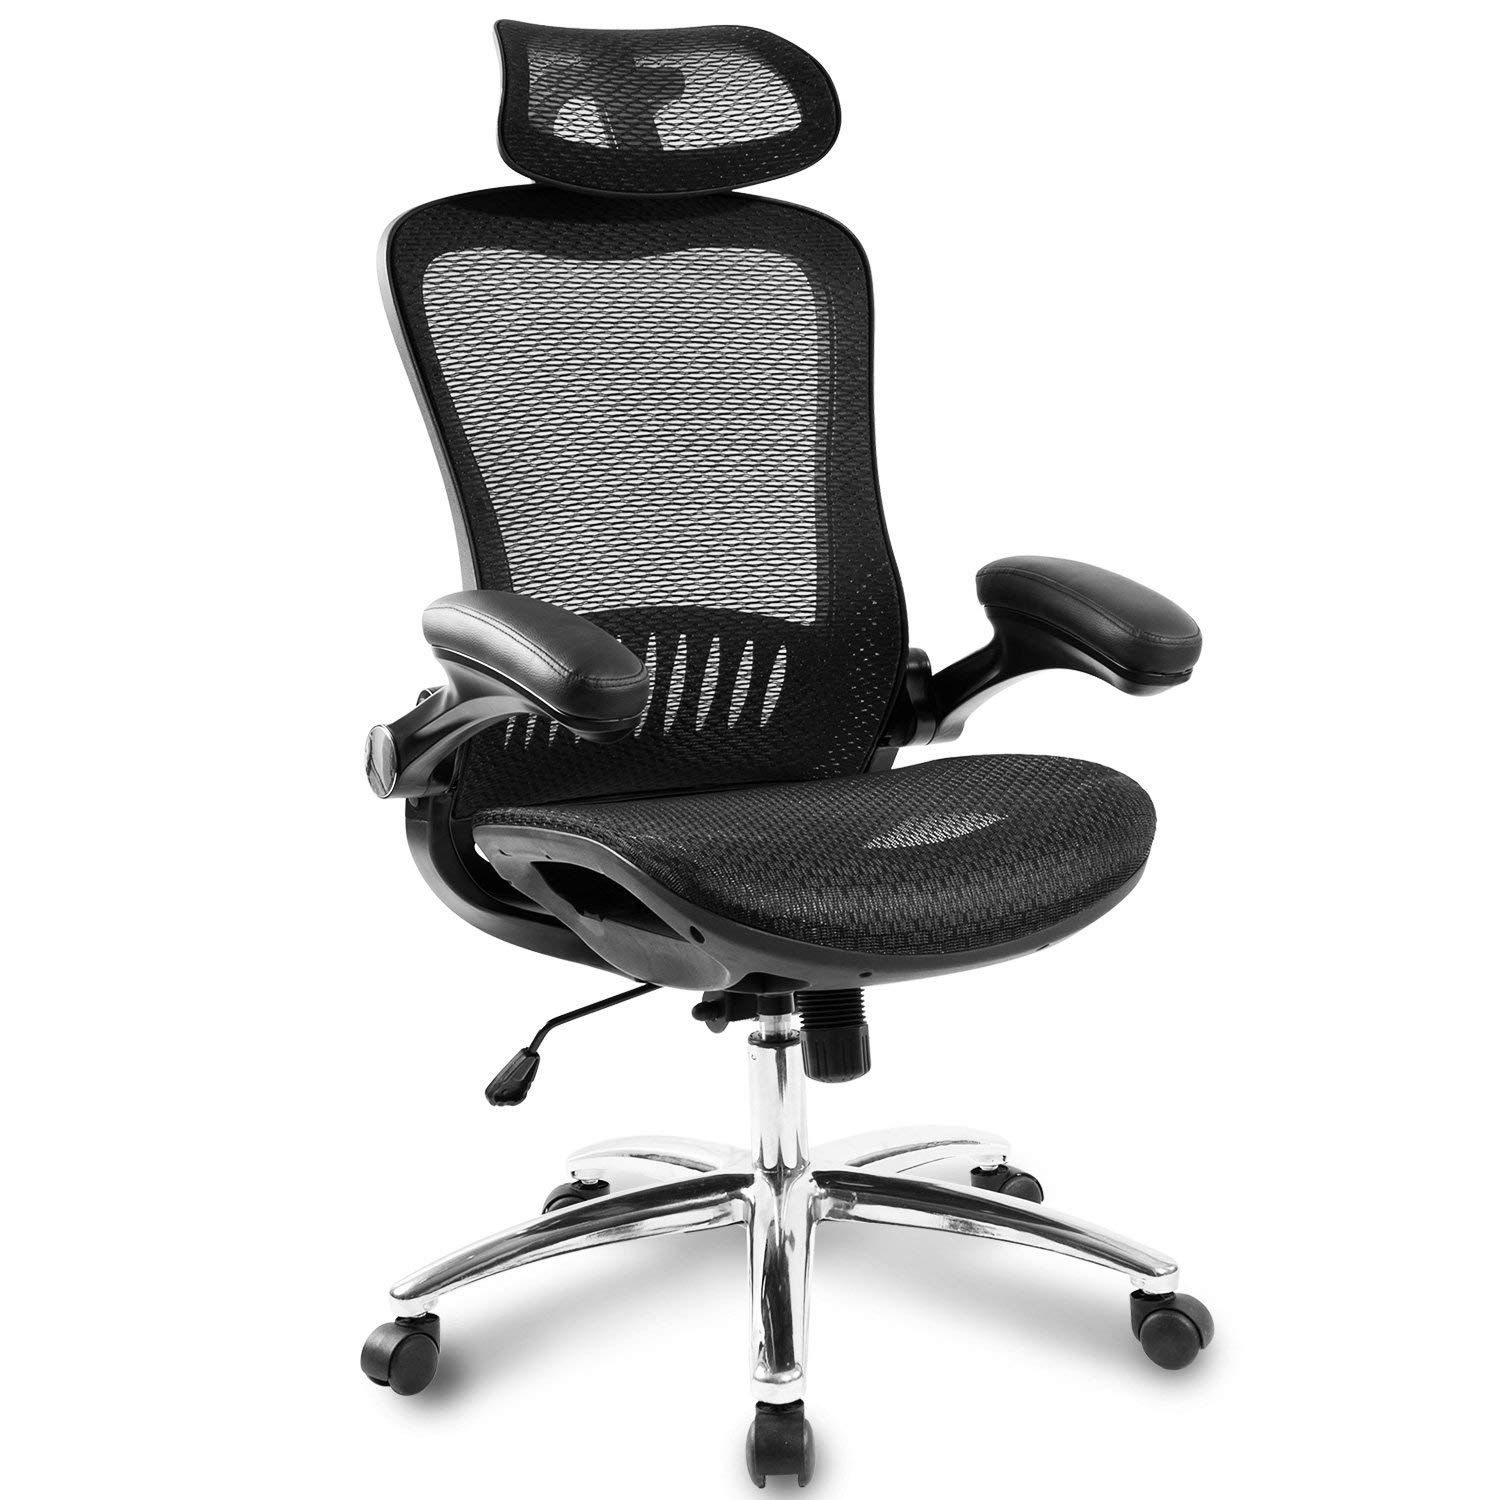 Office Chair Office Mid Back Swivel Lumbar Support Desk